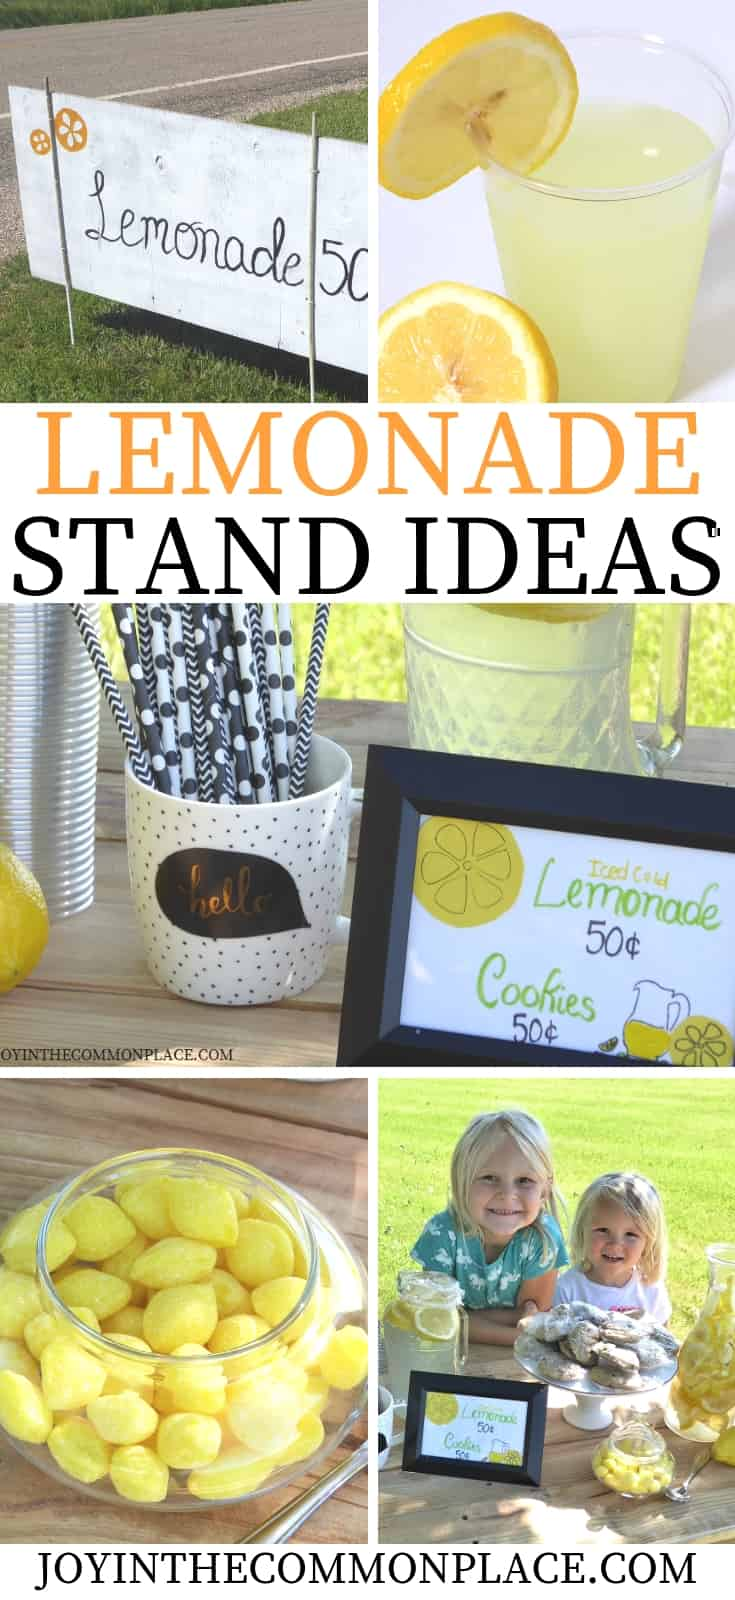 How to Set Up a Successful Lemonade Stand for Kids!